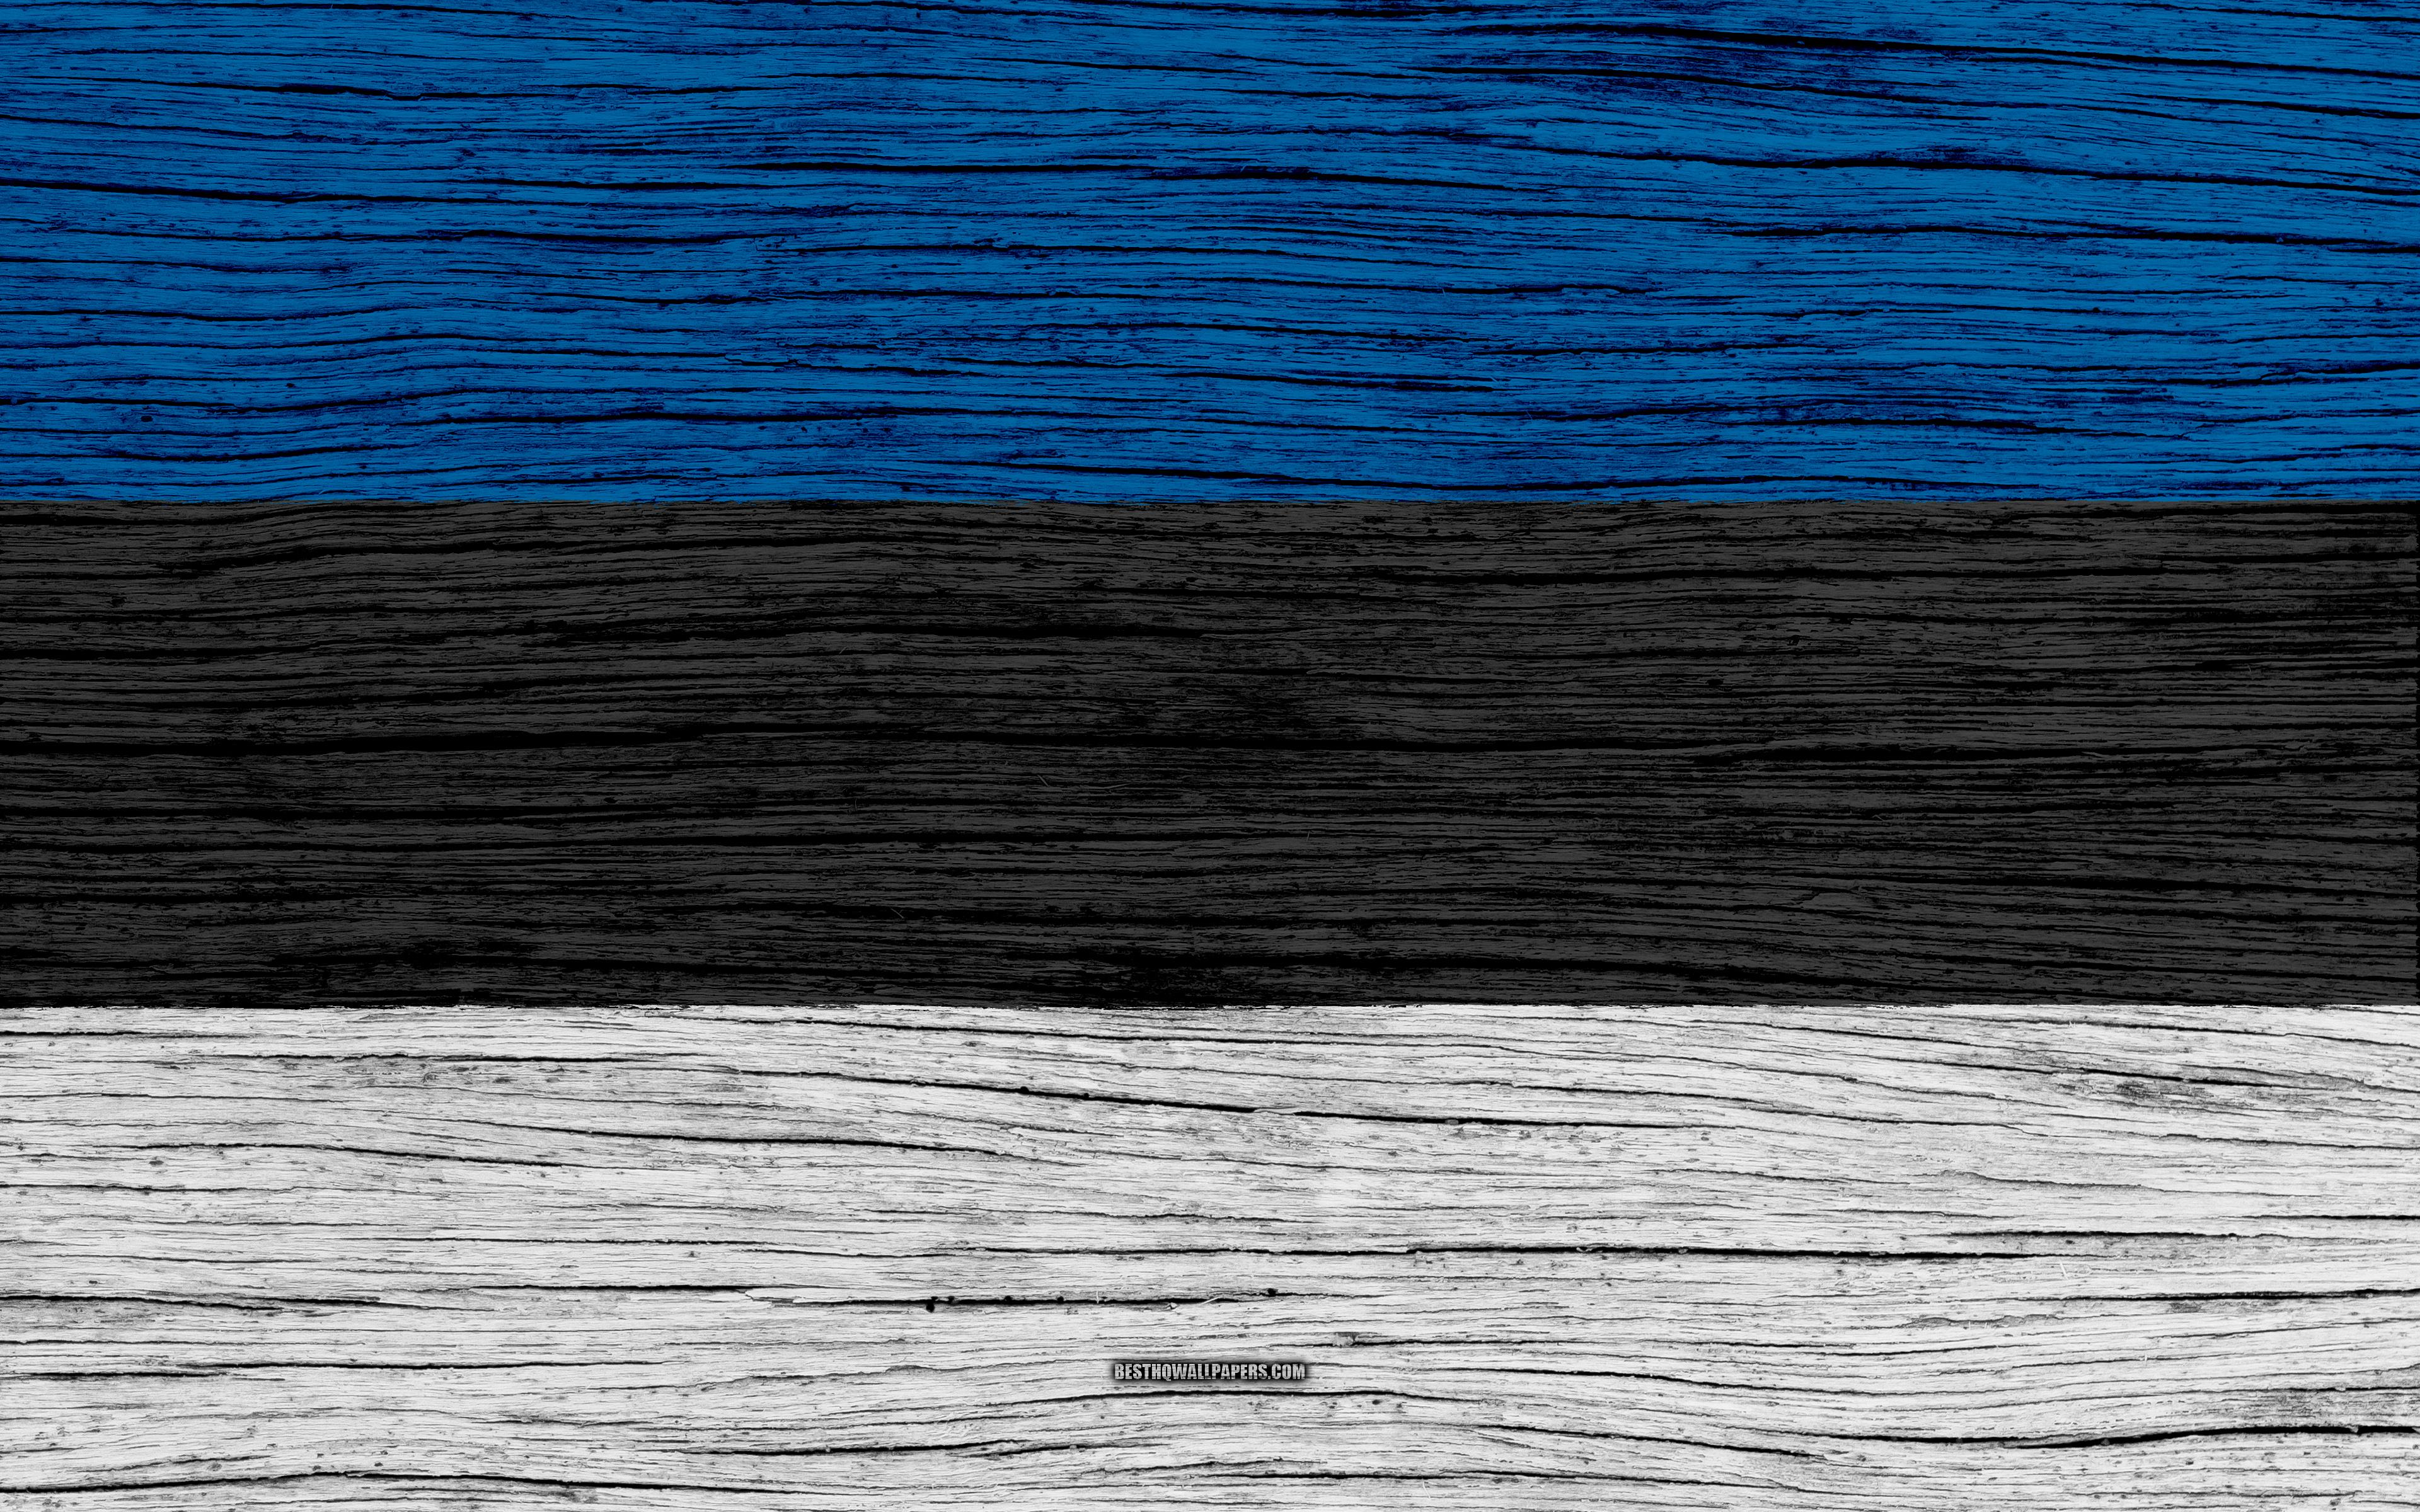 Download wallpapers Flag of Estonia, 4k, Europe, wooden texture